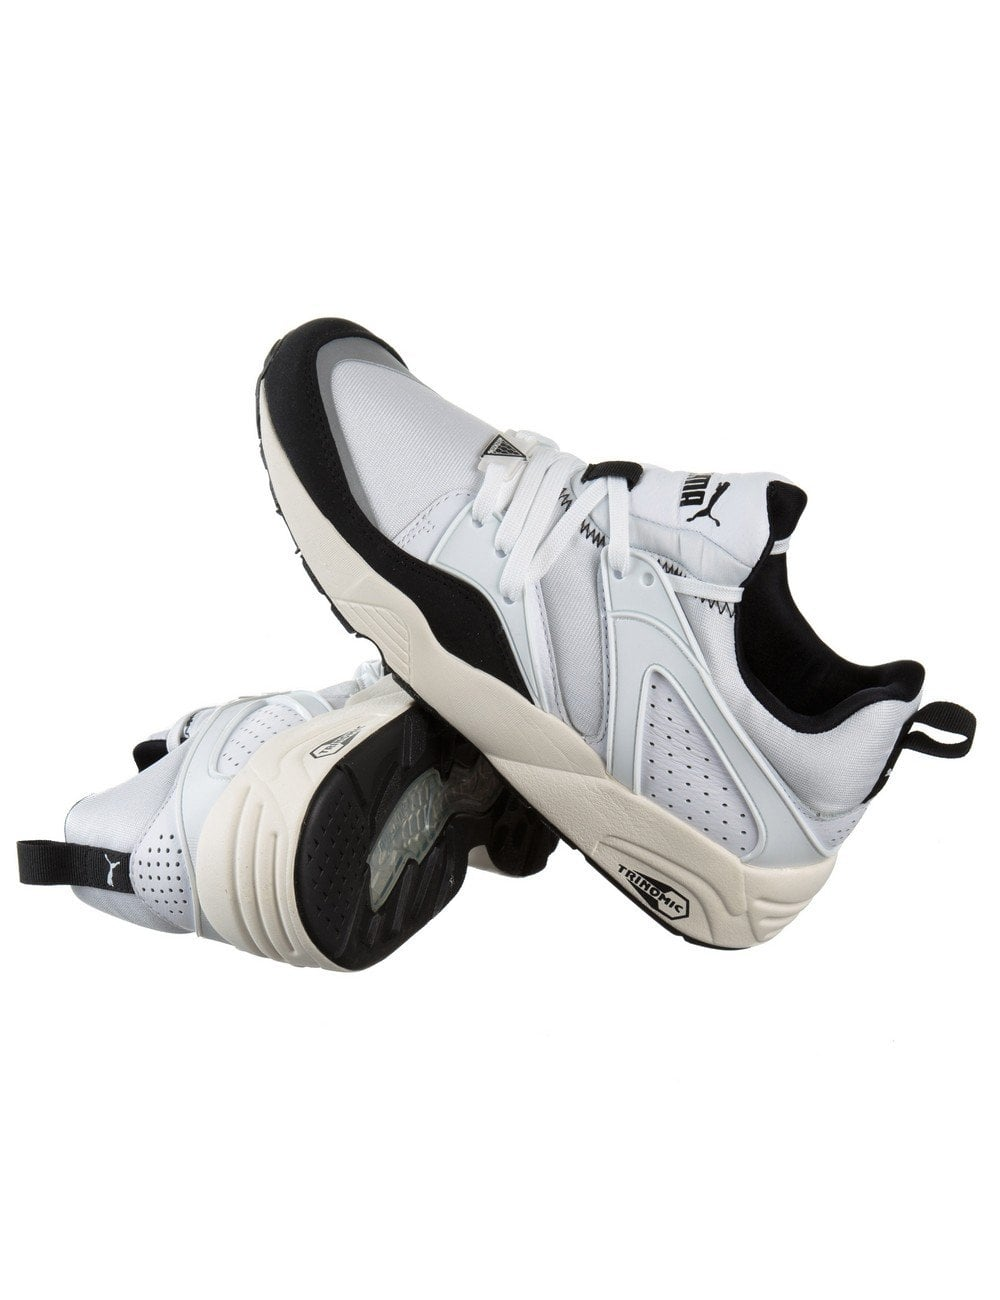 Blaze of Glory Shoes - Black (Primary Pack) d830a1803